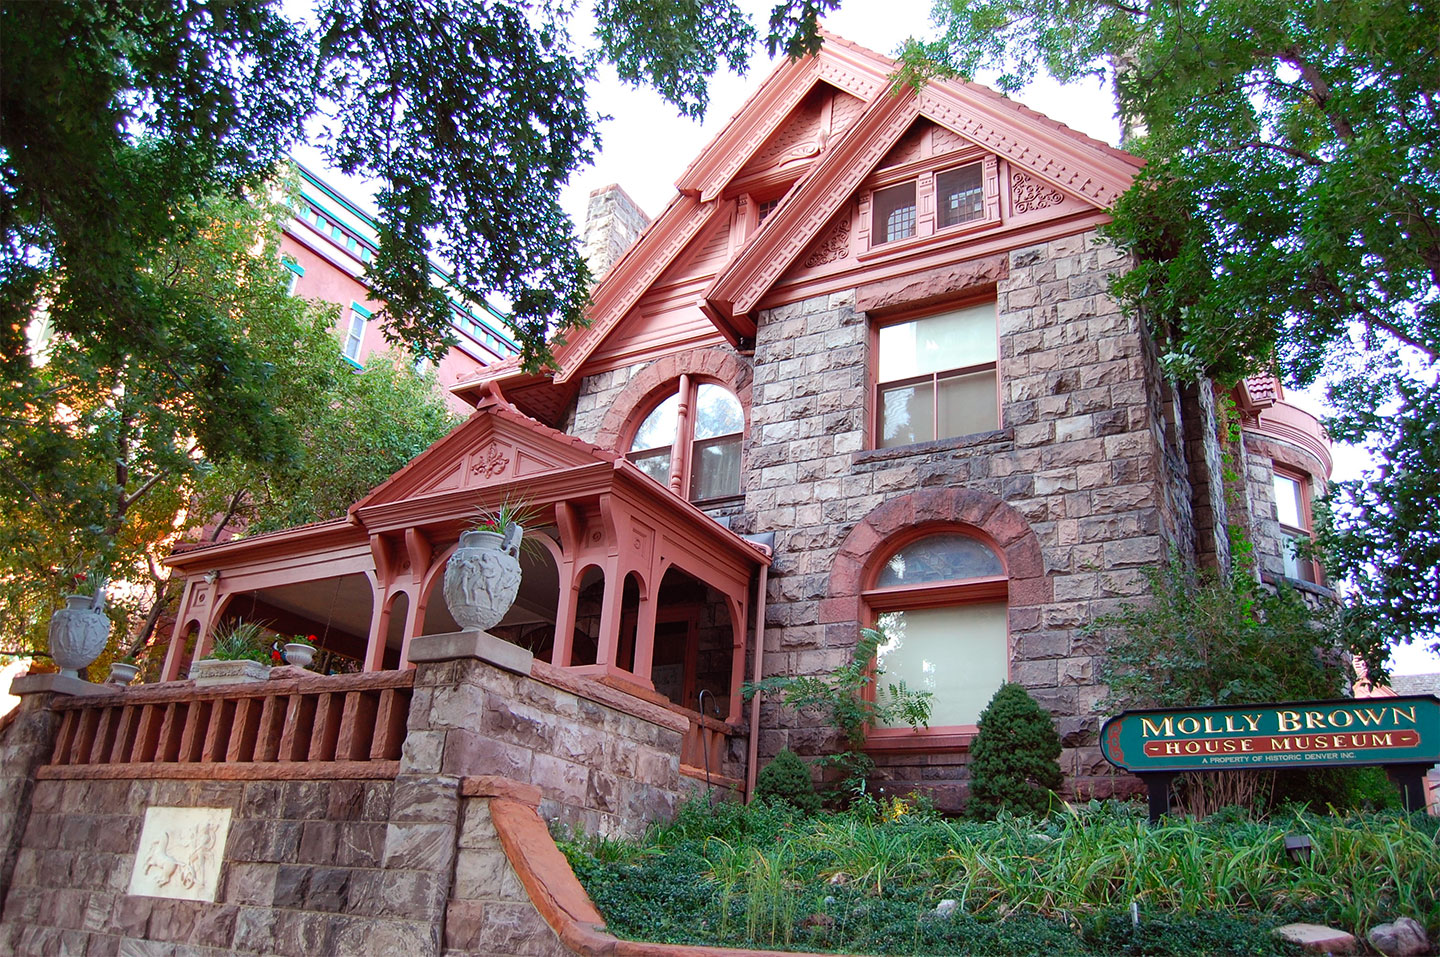 Things to Do in Denver - Molly Brown House